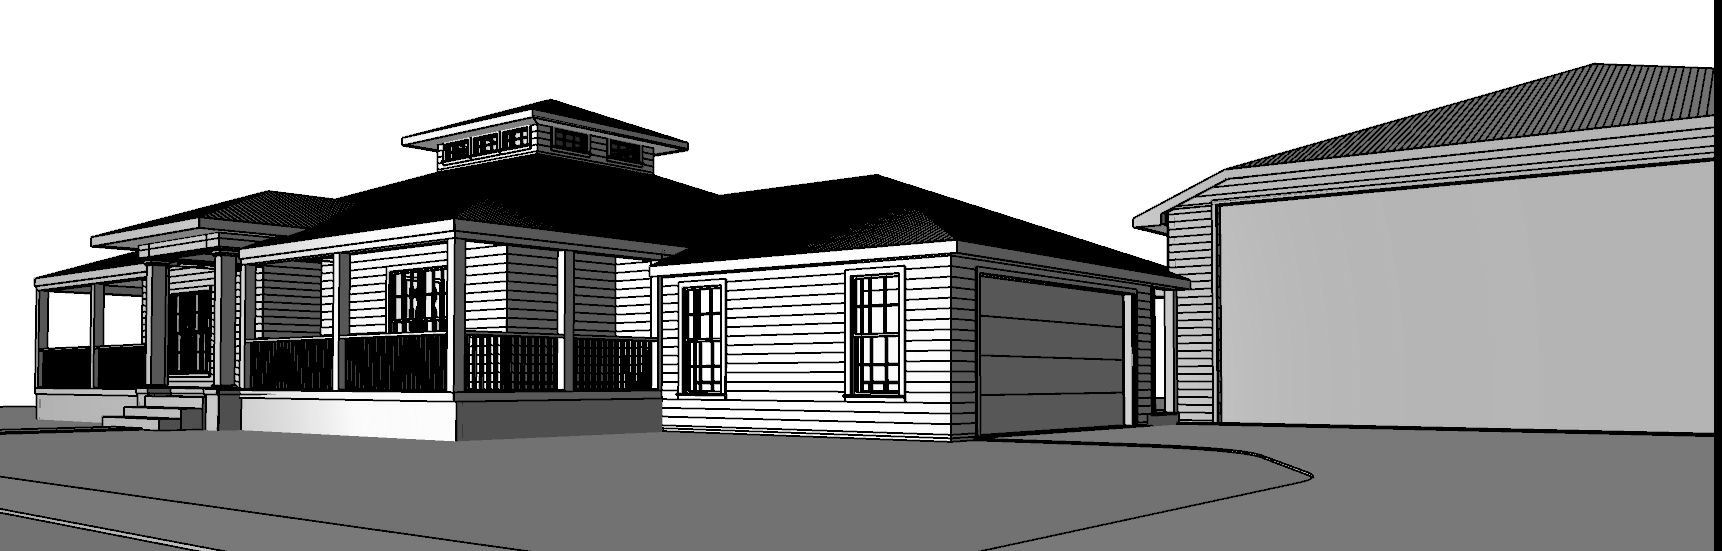 Airport hangar home plans house design plans for Hangar home plans